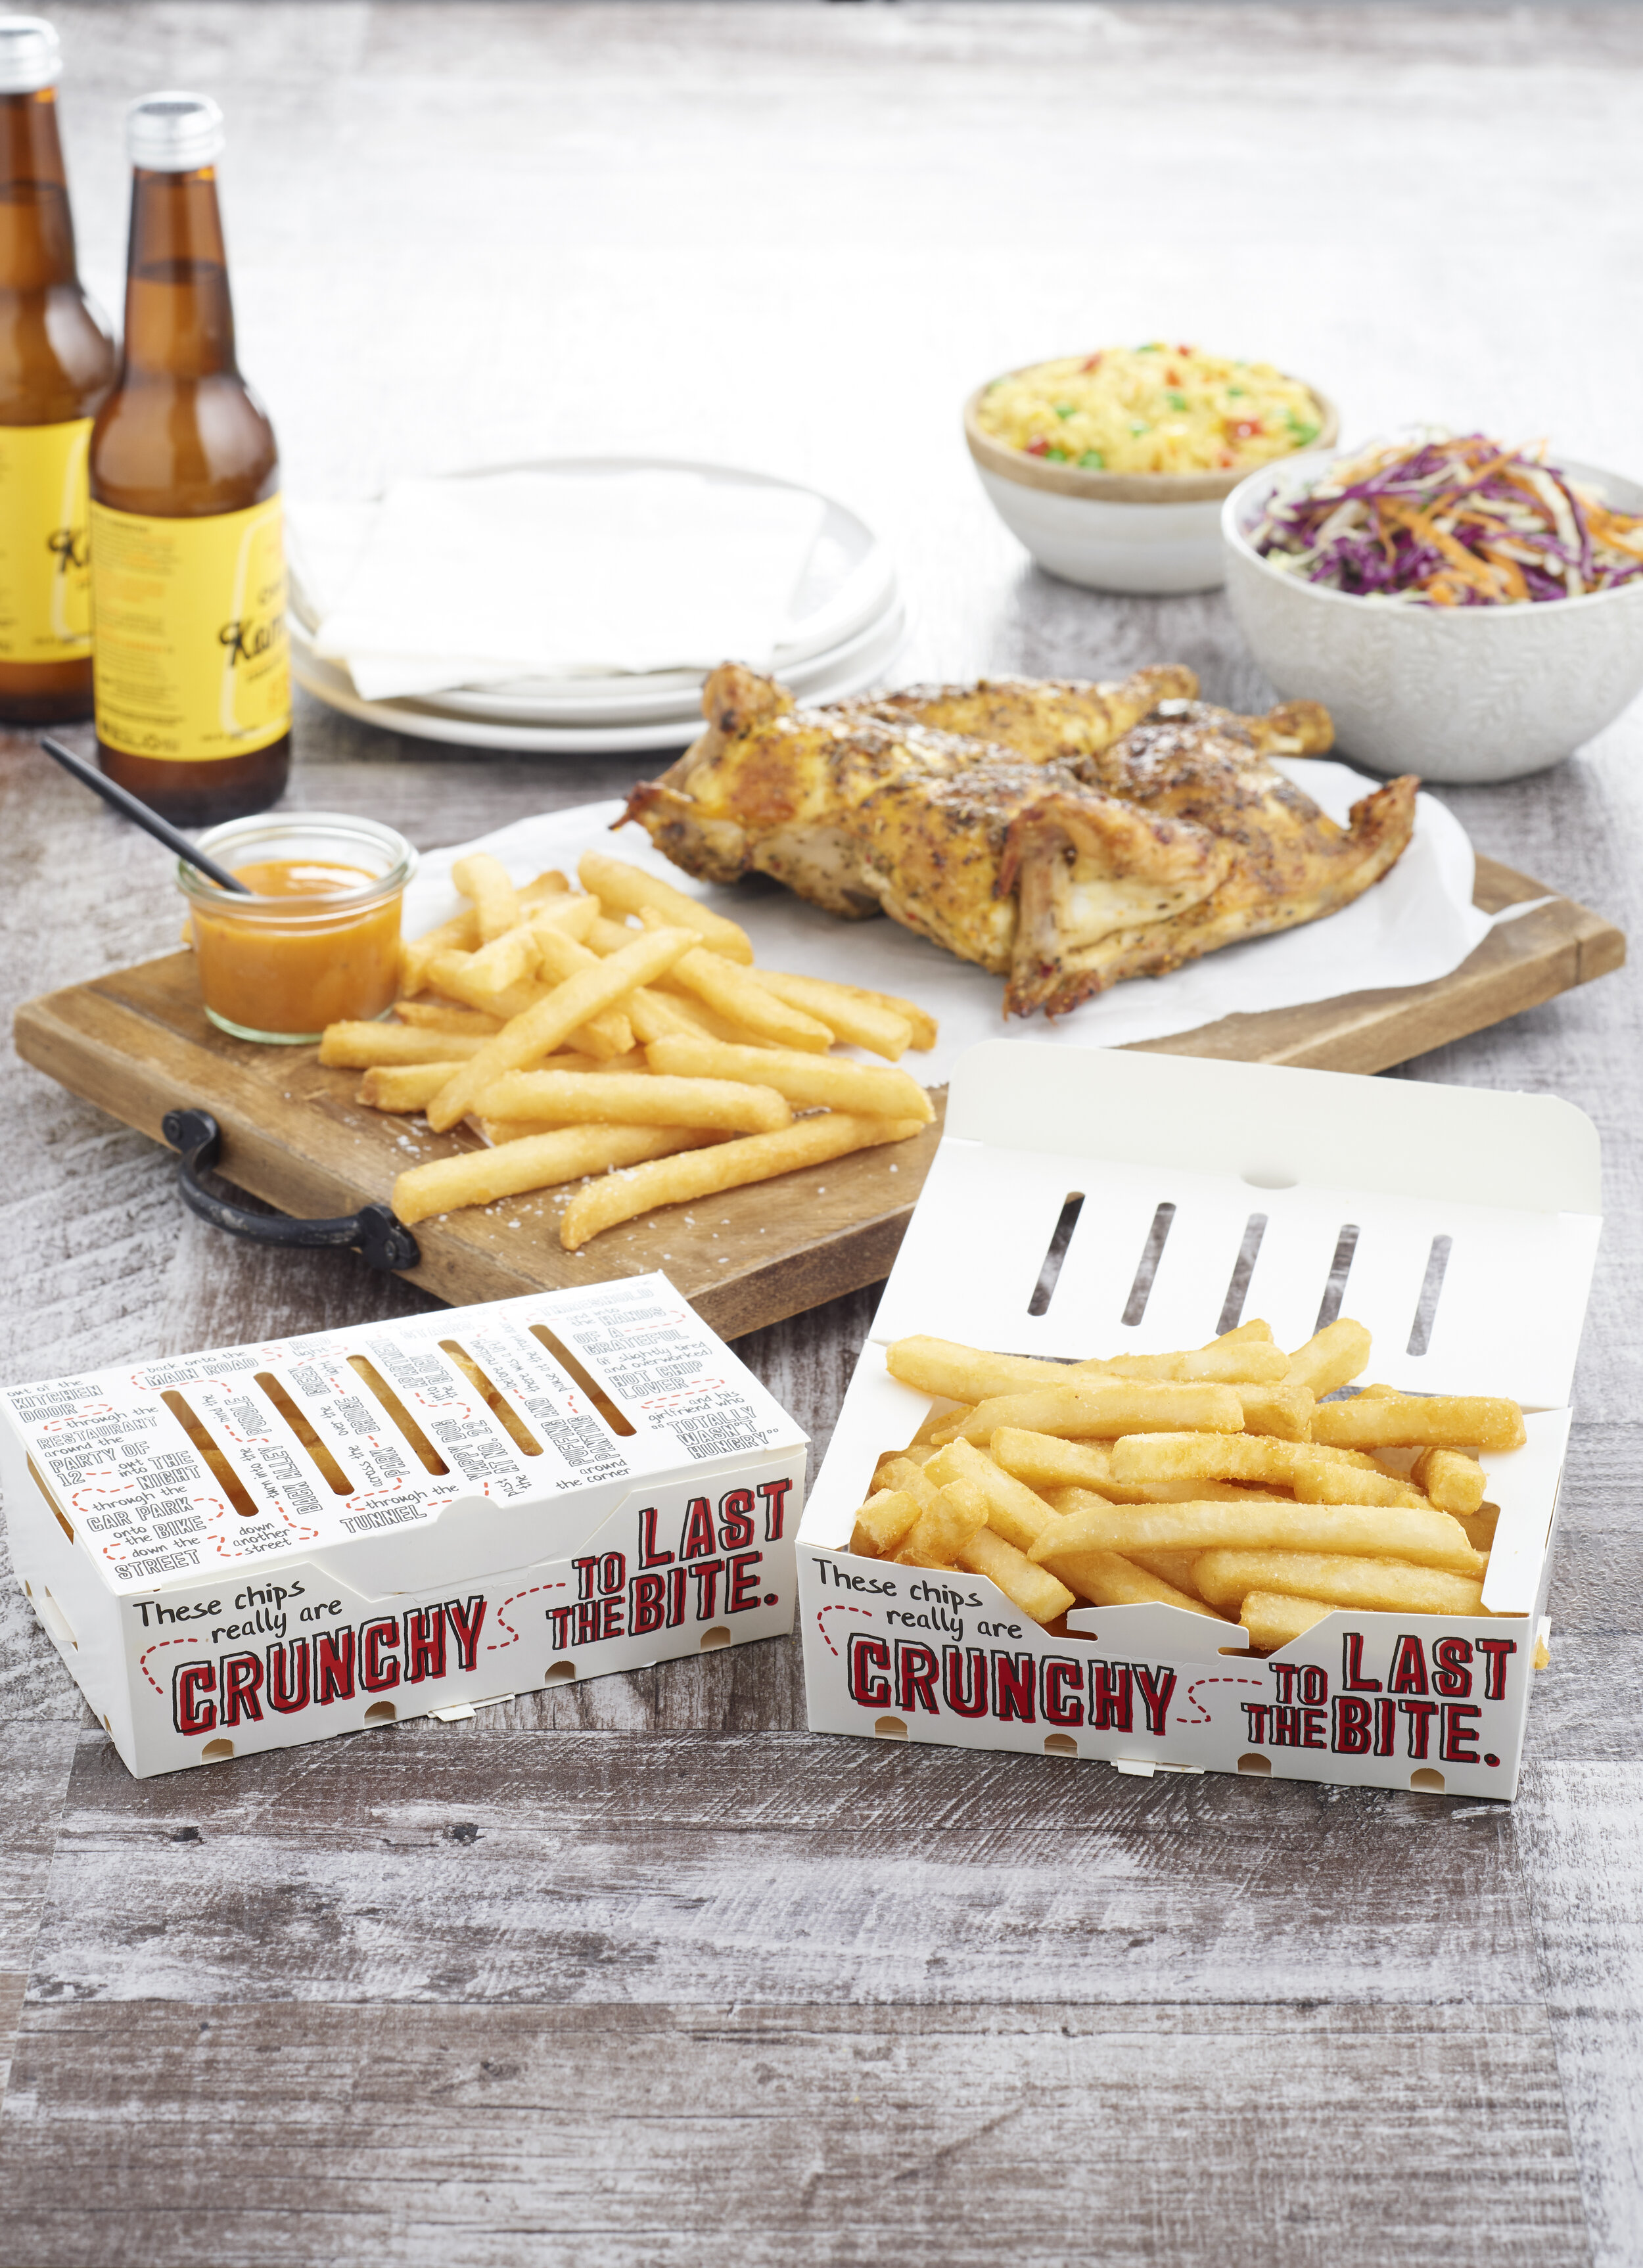 Delivery-Chips-Portuguese-Chicken-P-04.jpg